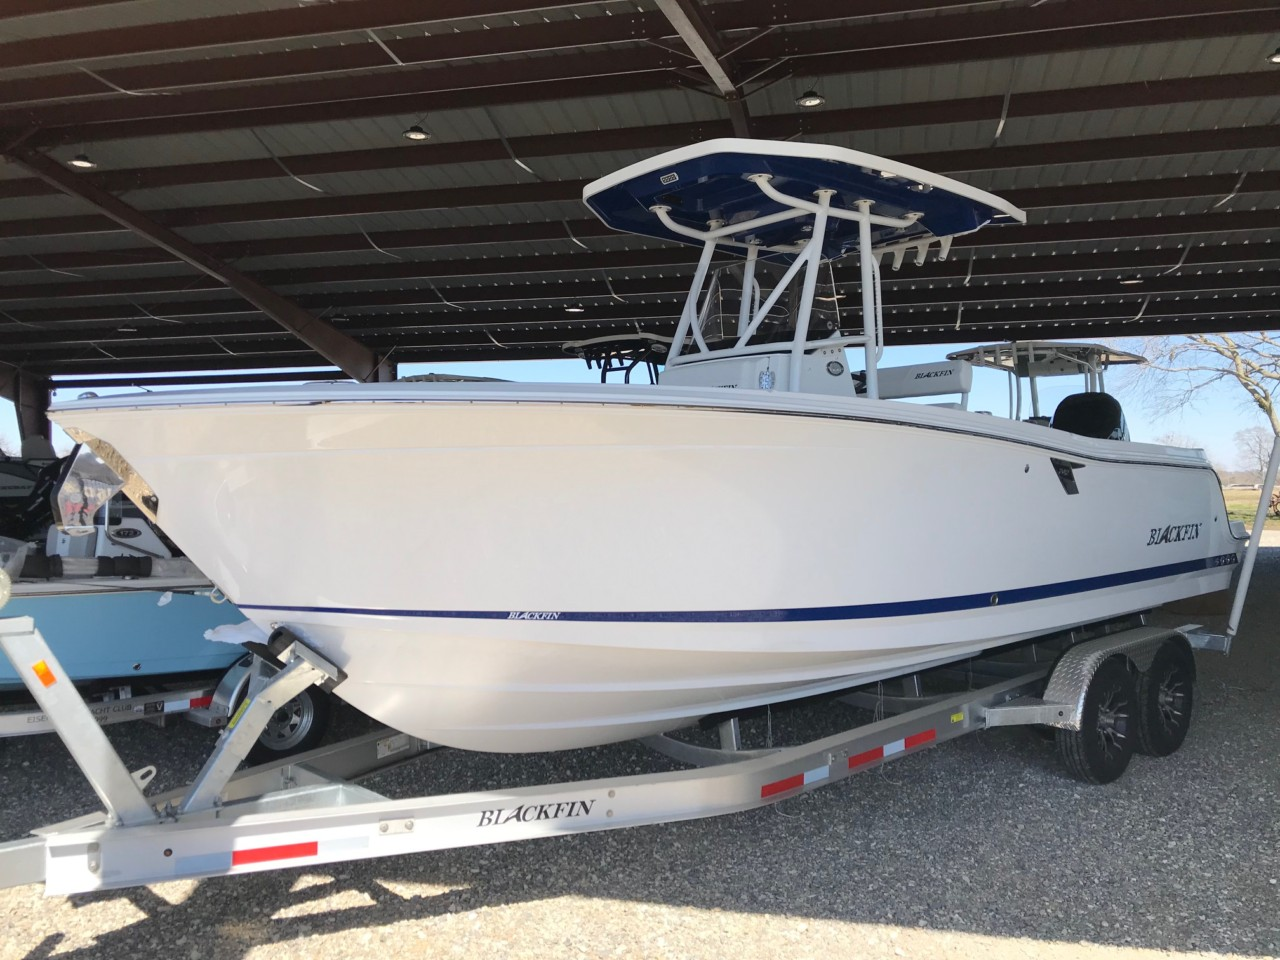 2019 Blackfin 242 Center Console with 350 Mercury Verado